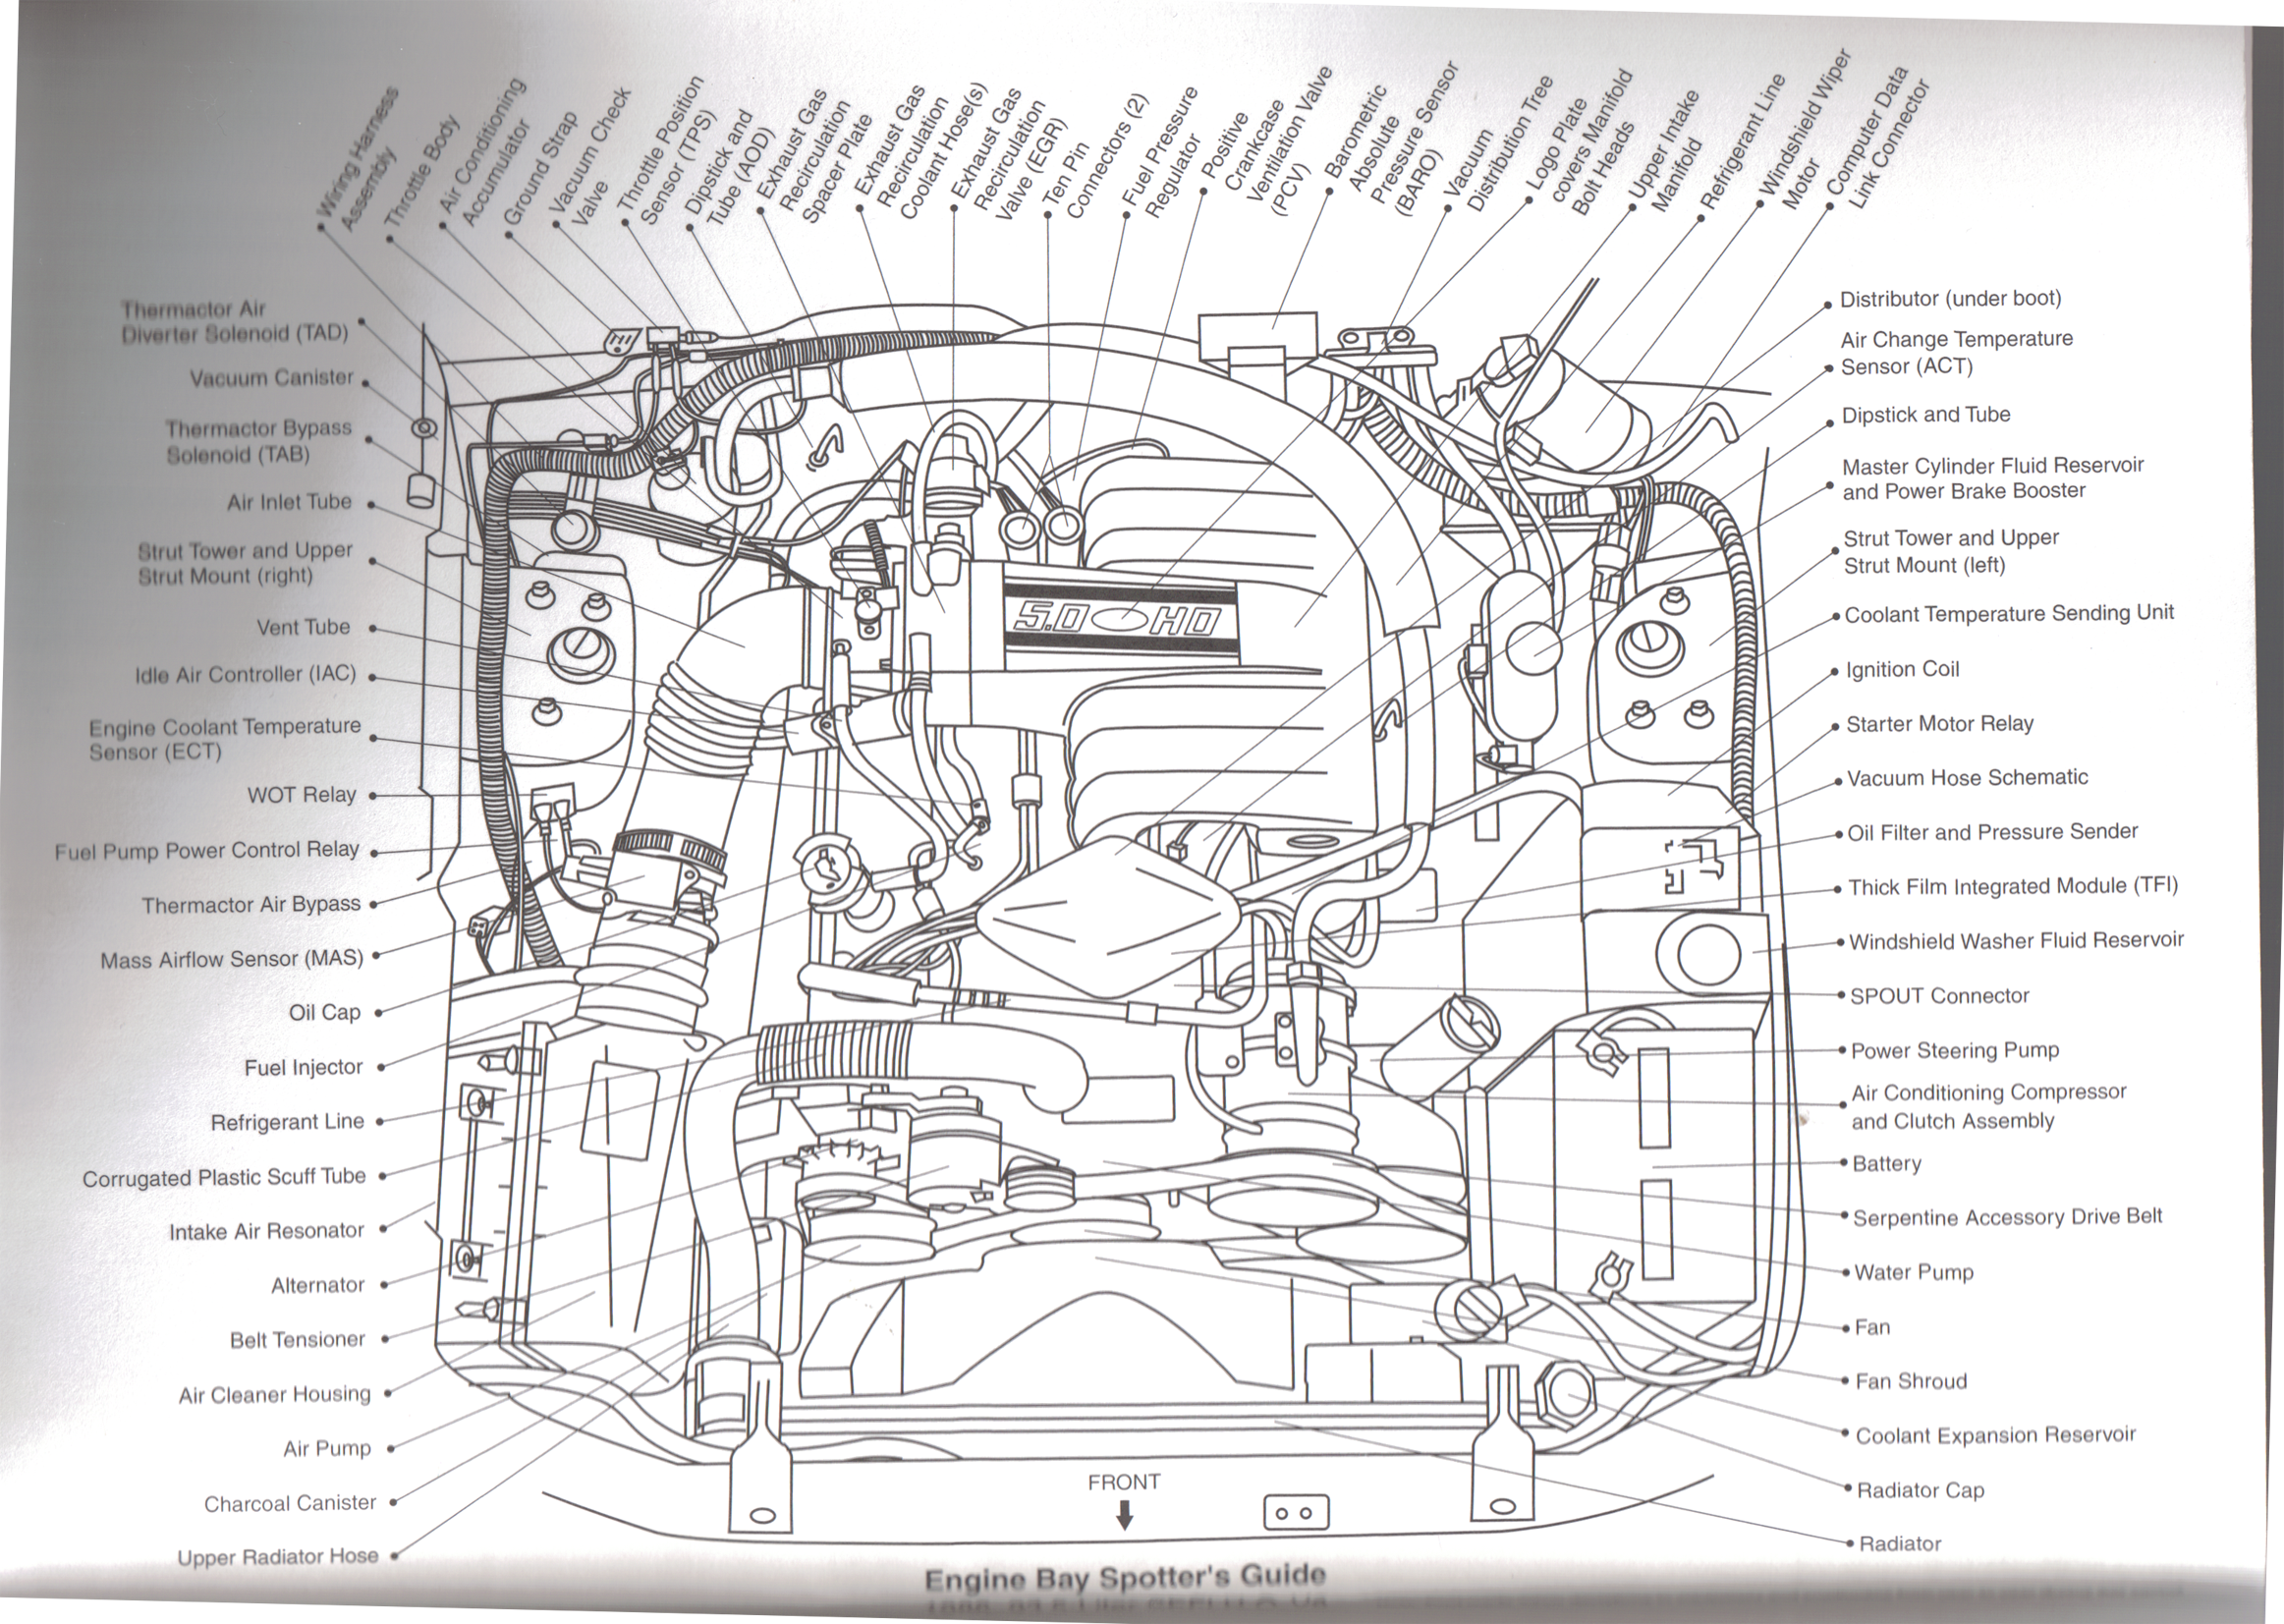 1987 1993 foxbody 5.0 sefi v8 engine part diagram everything you need to know about 1979 1993 foxbody mustangs 1967 Mustang Wiring Schematic at crackthecode.co